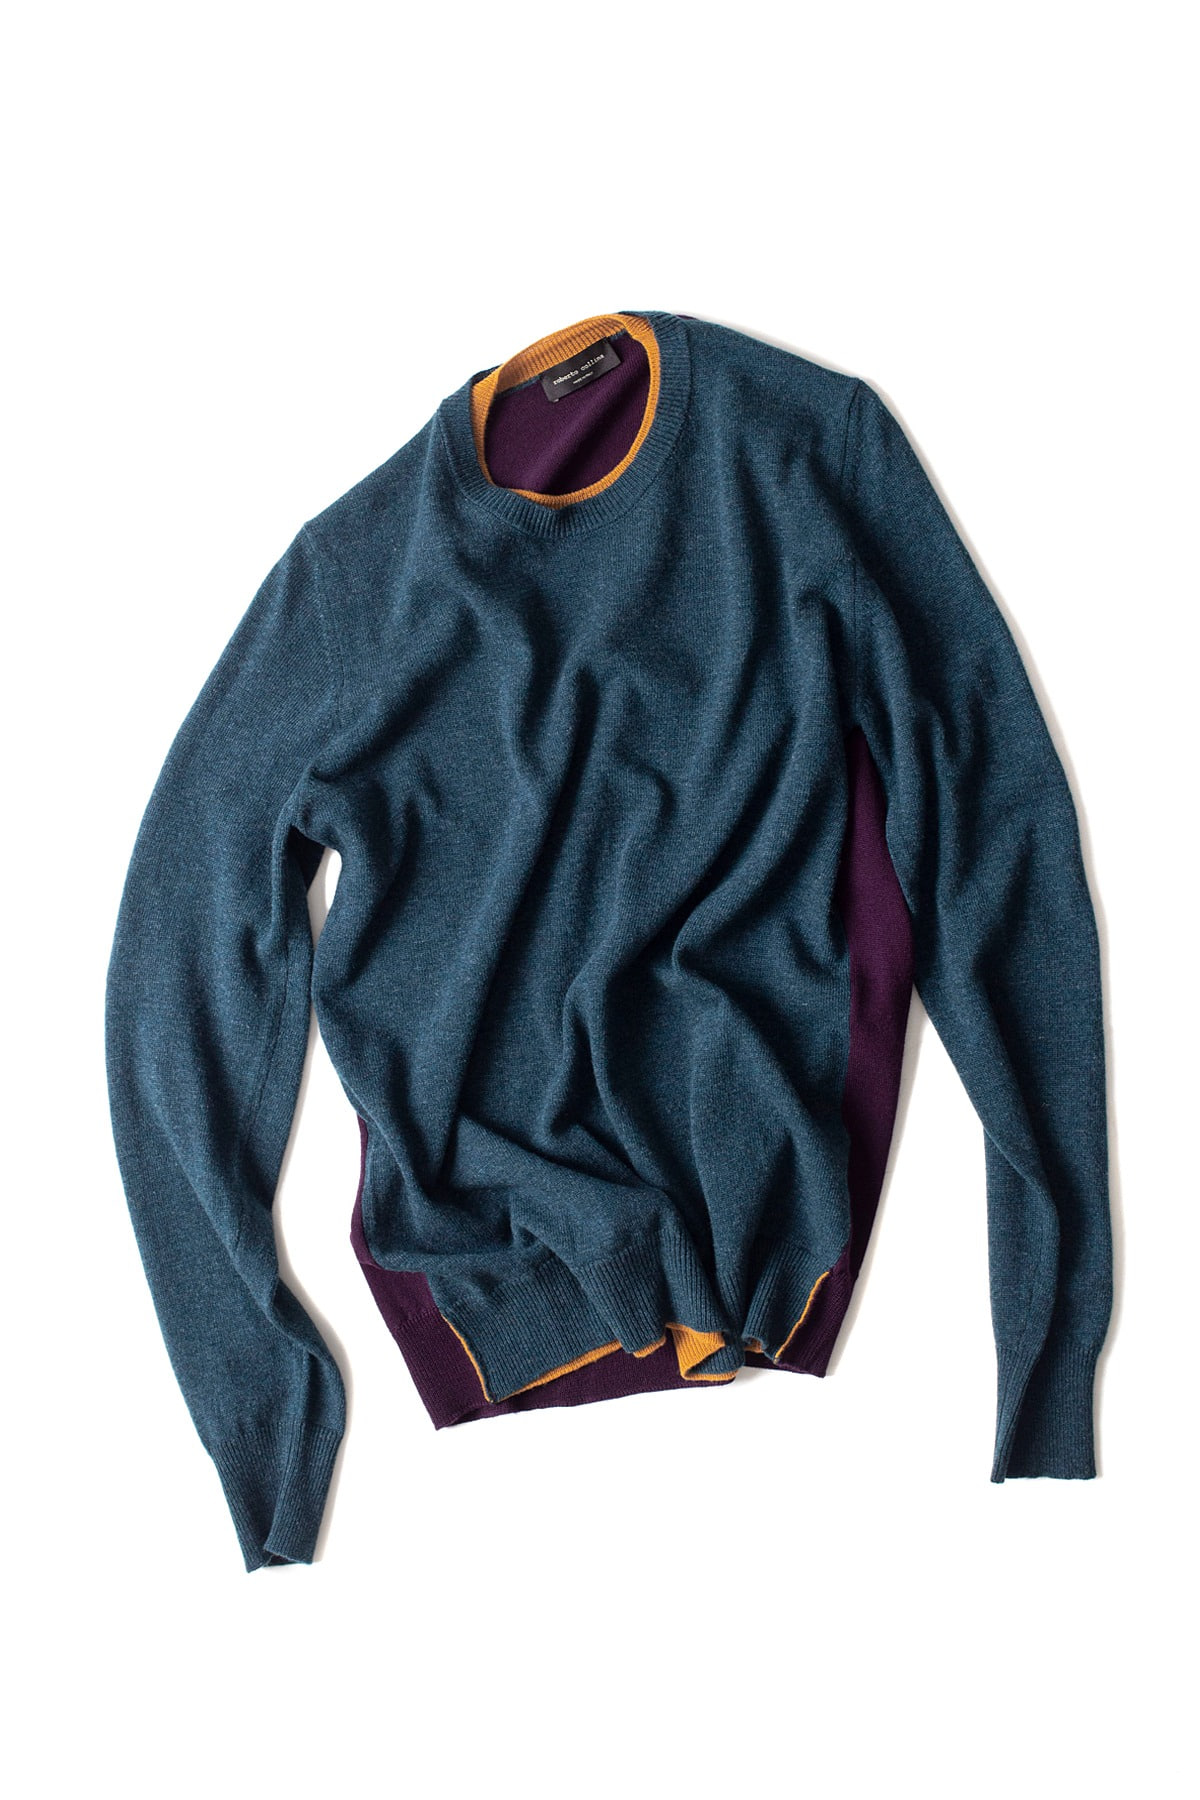 roberto collina : L/S Knit Round Neck Sweater (Blue Green)